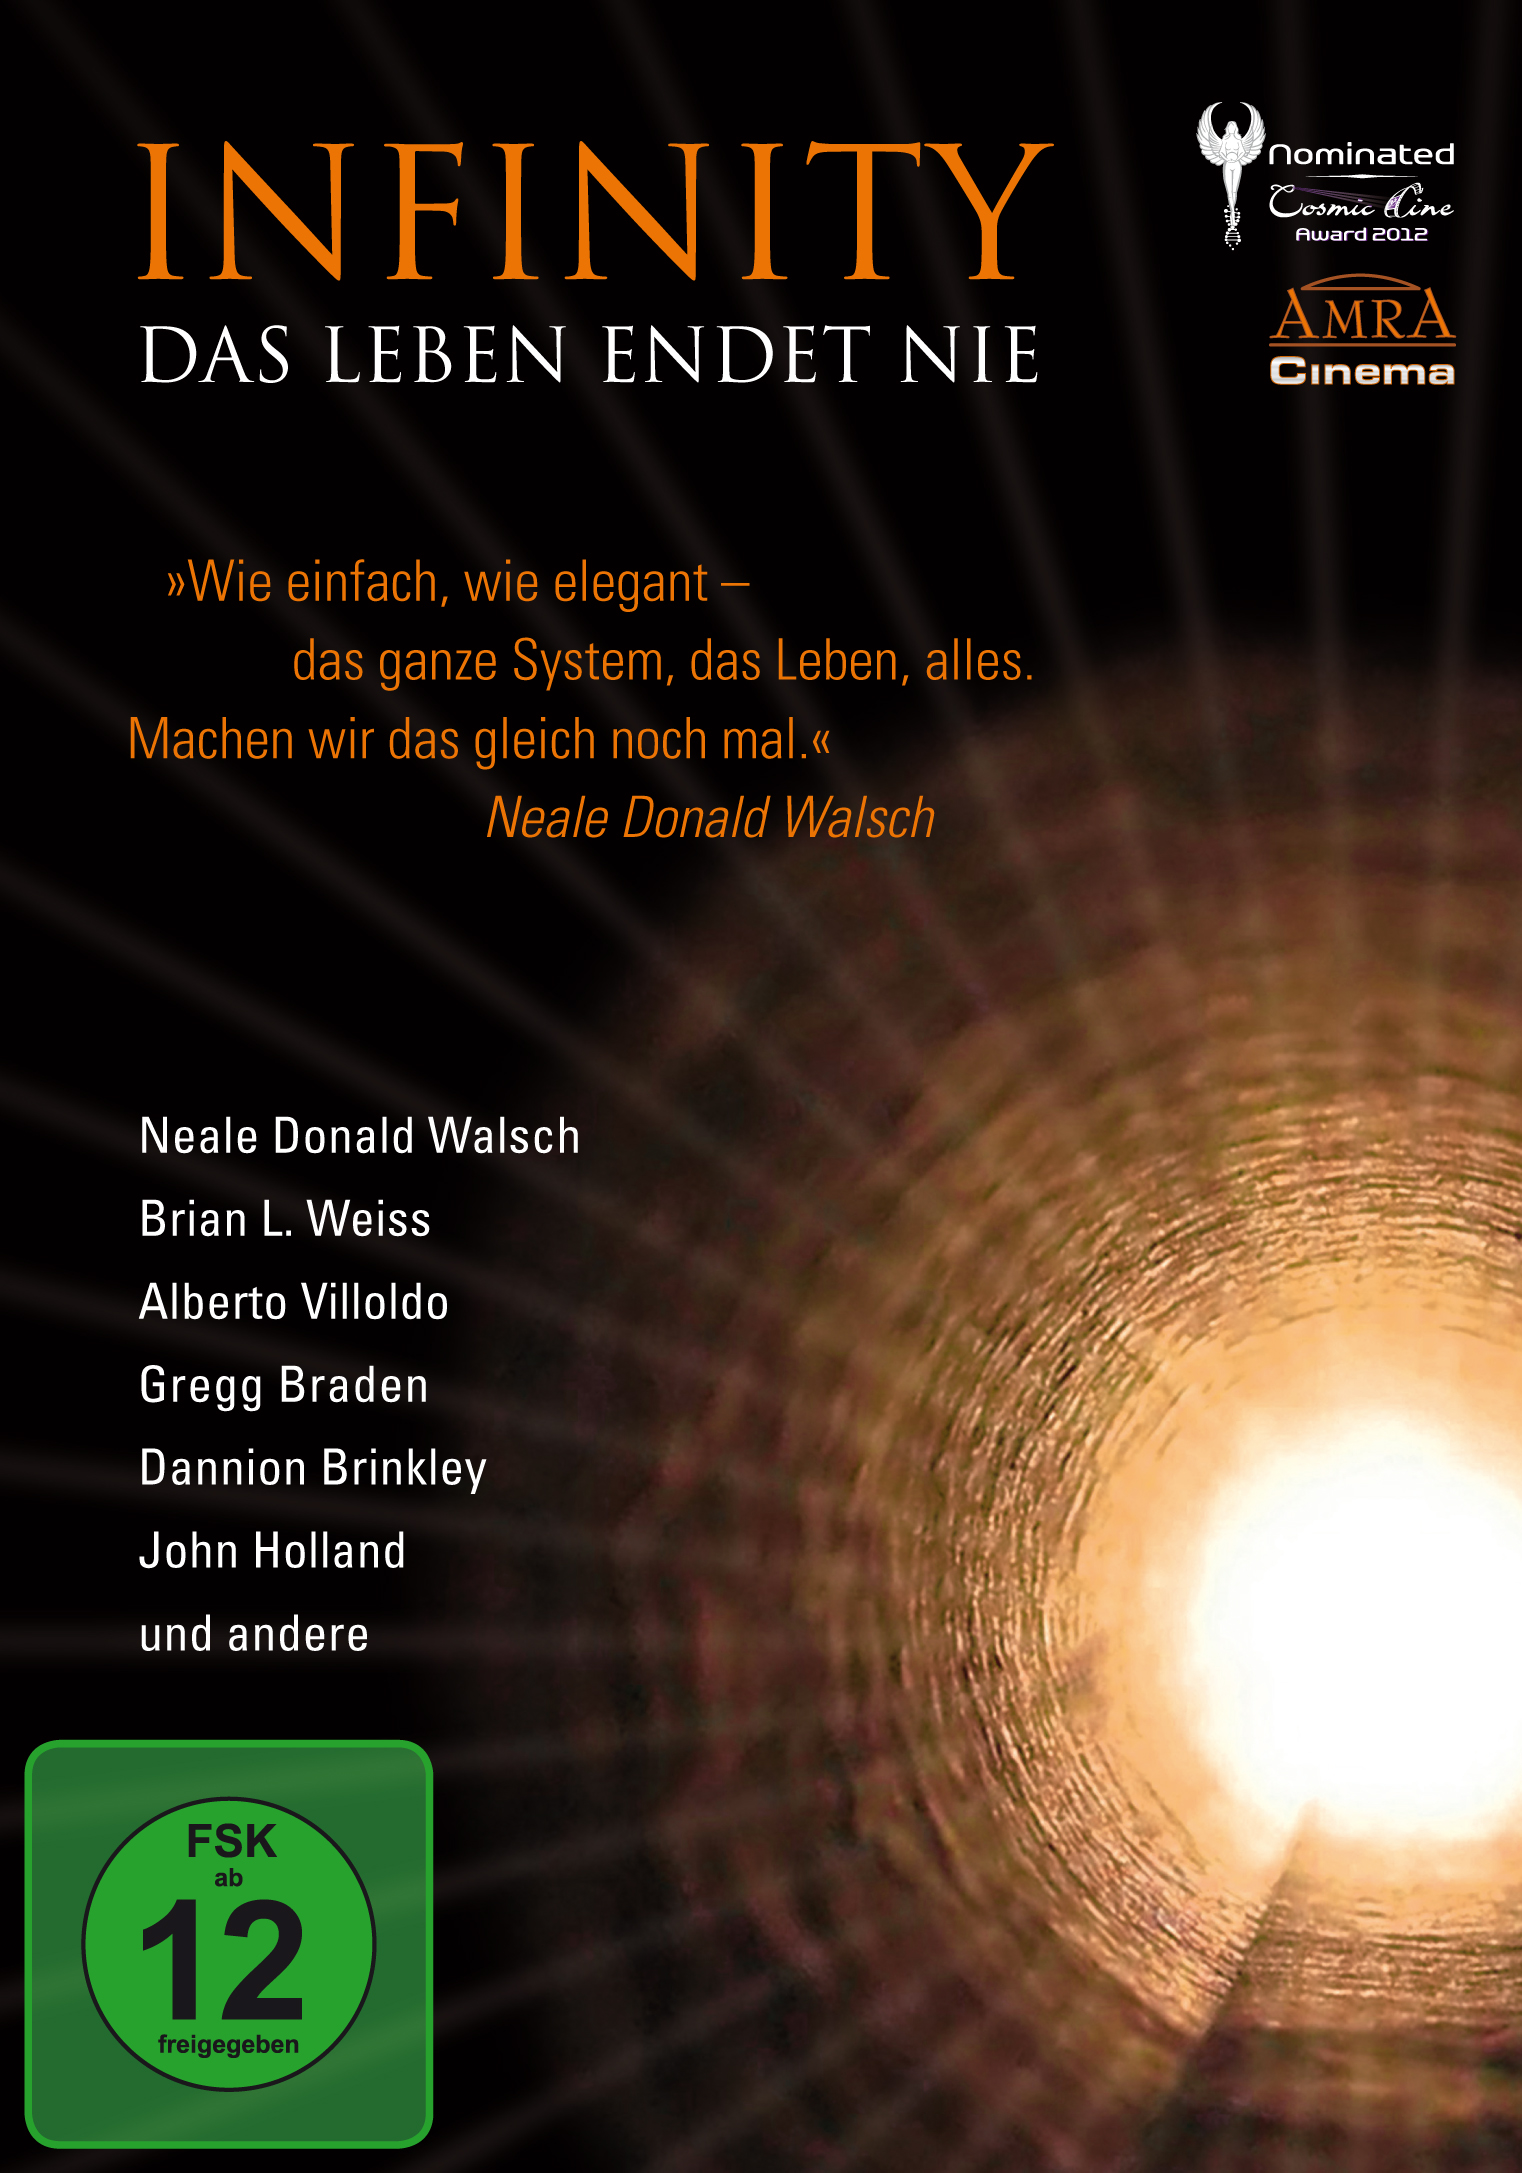 Coverfeindaten download